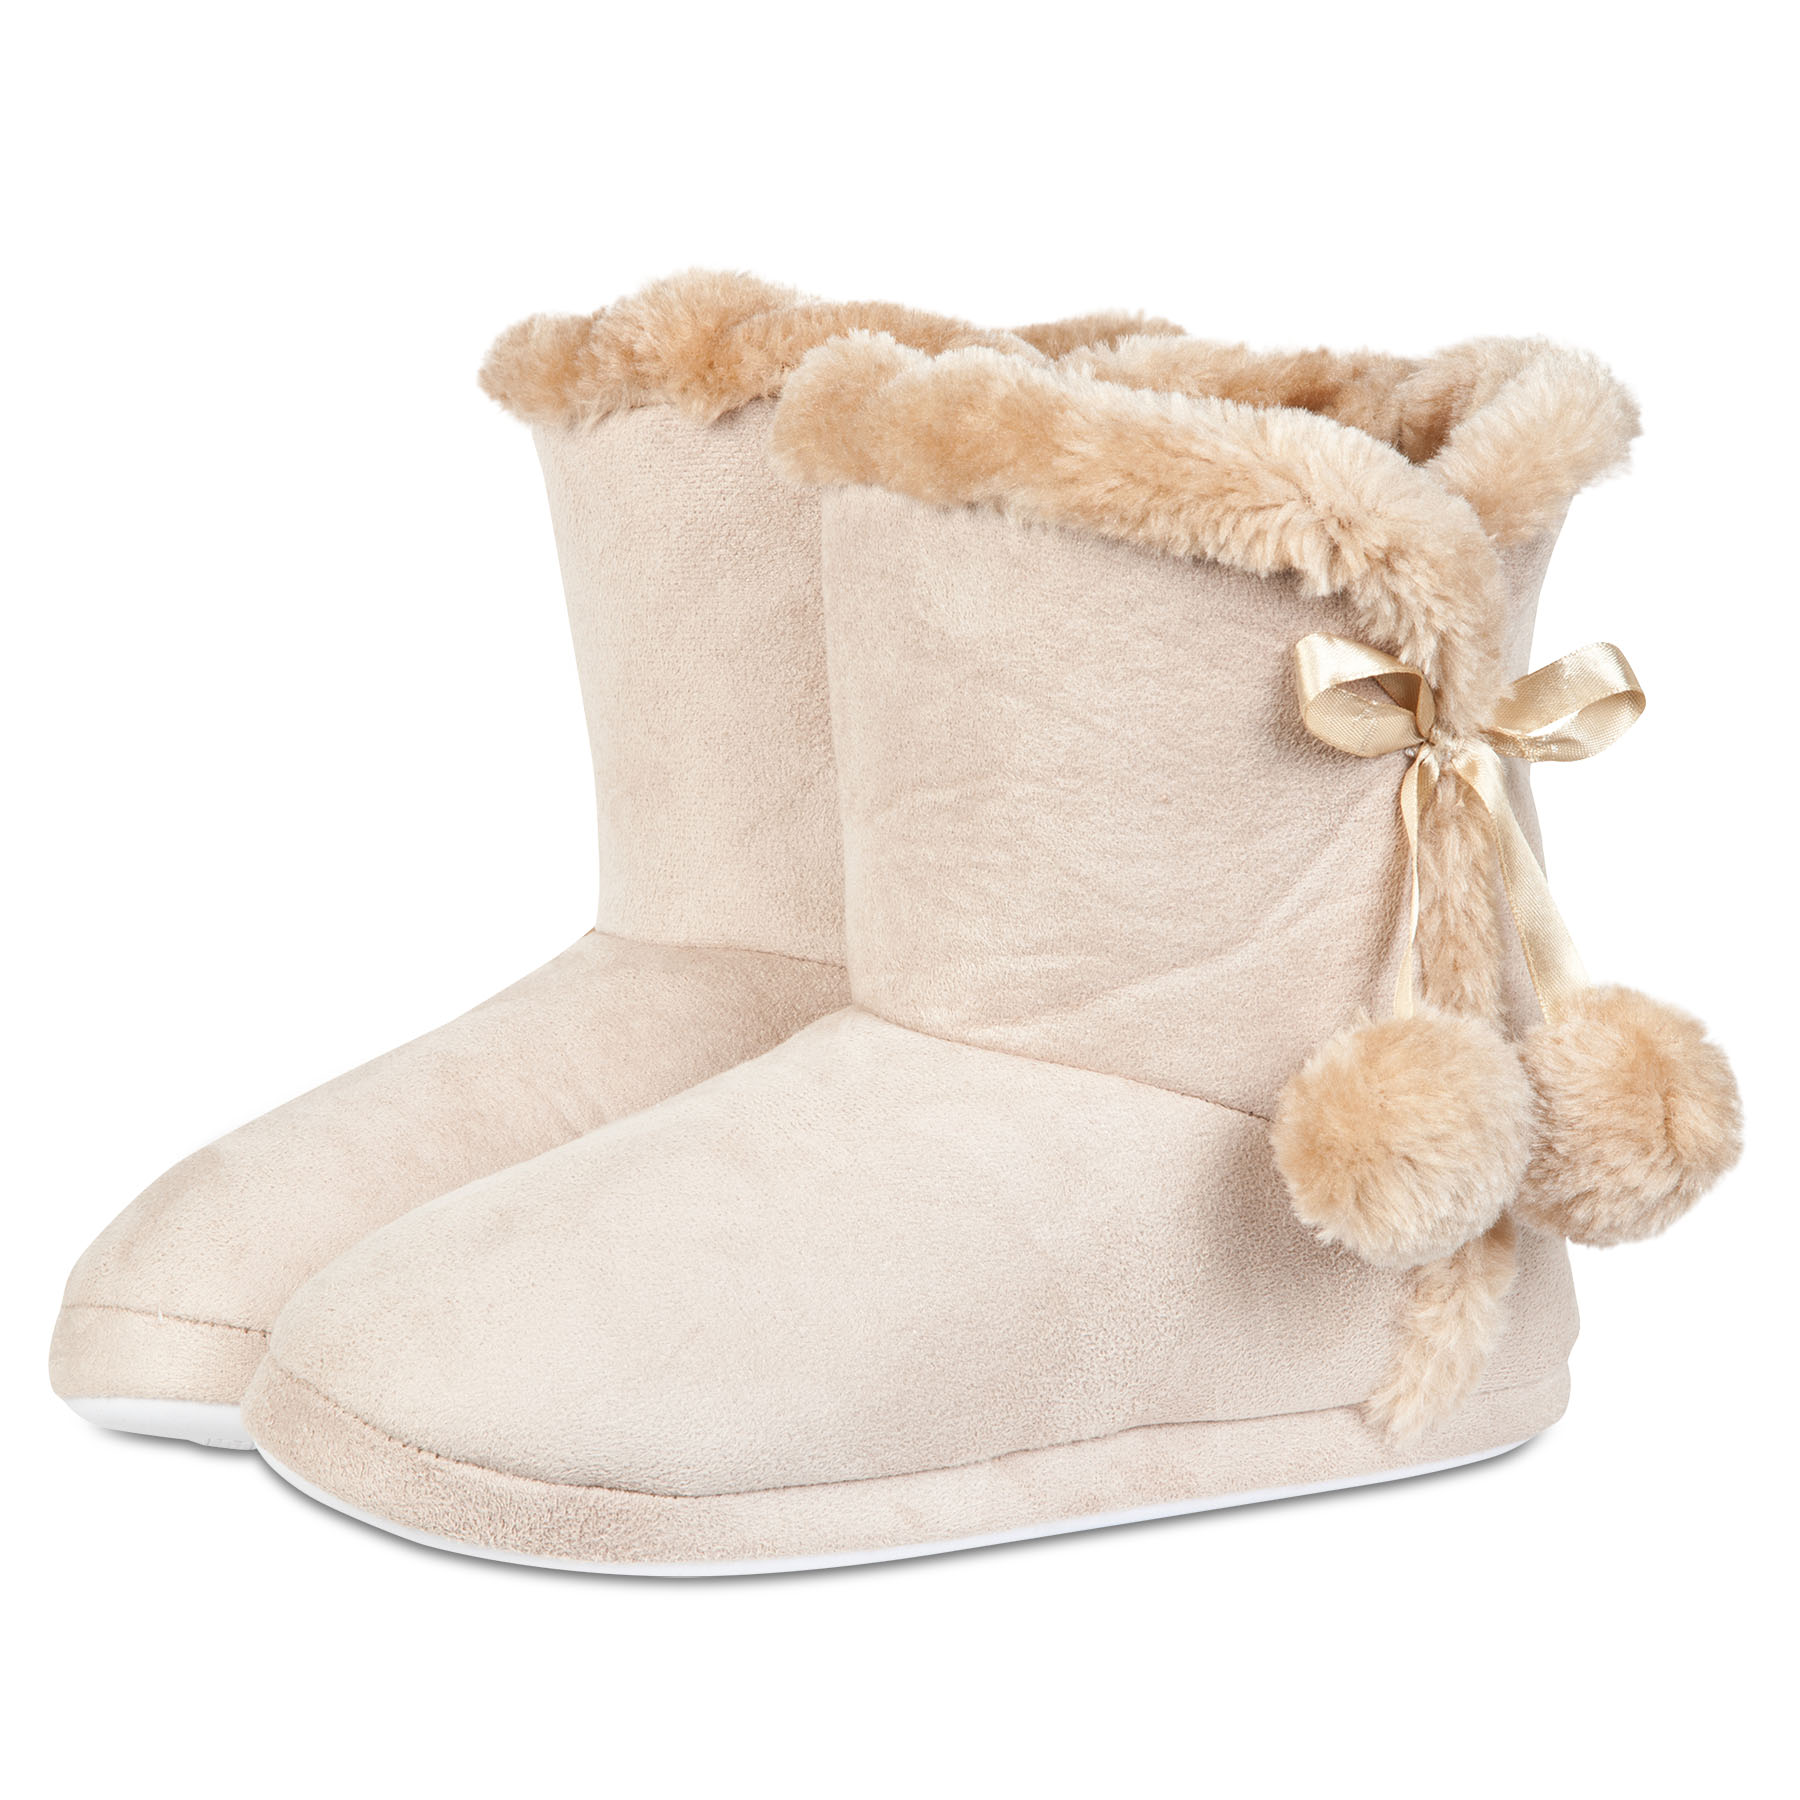 Manchester City Boot Slipper - Tan - Girls